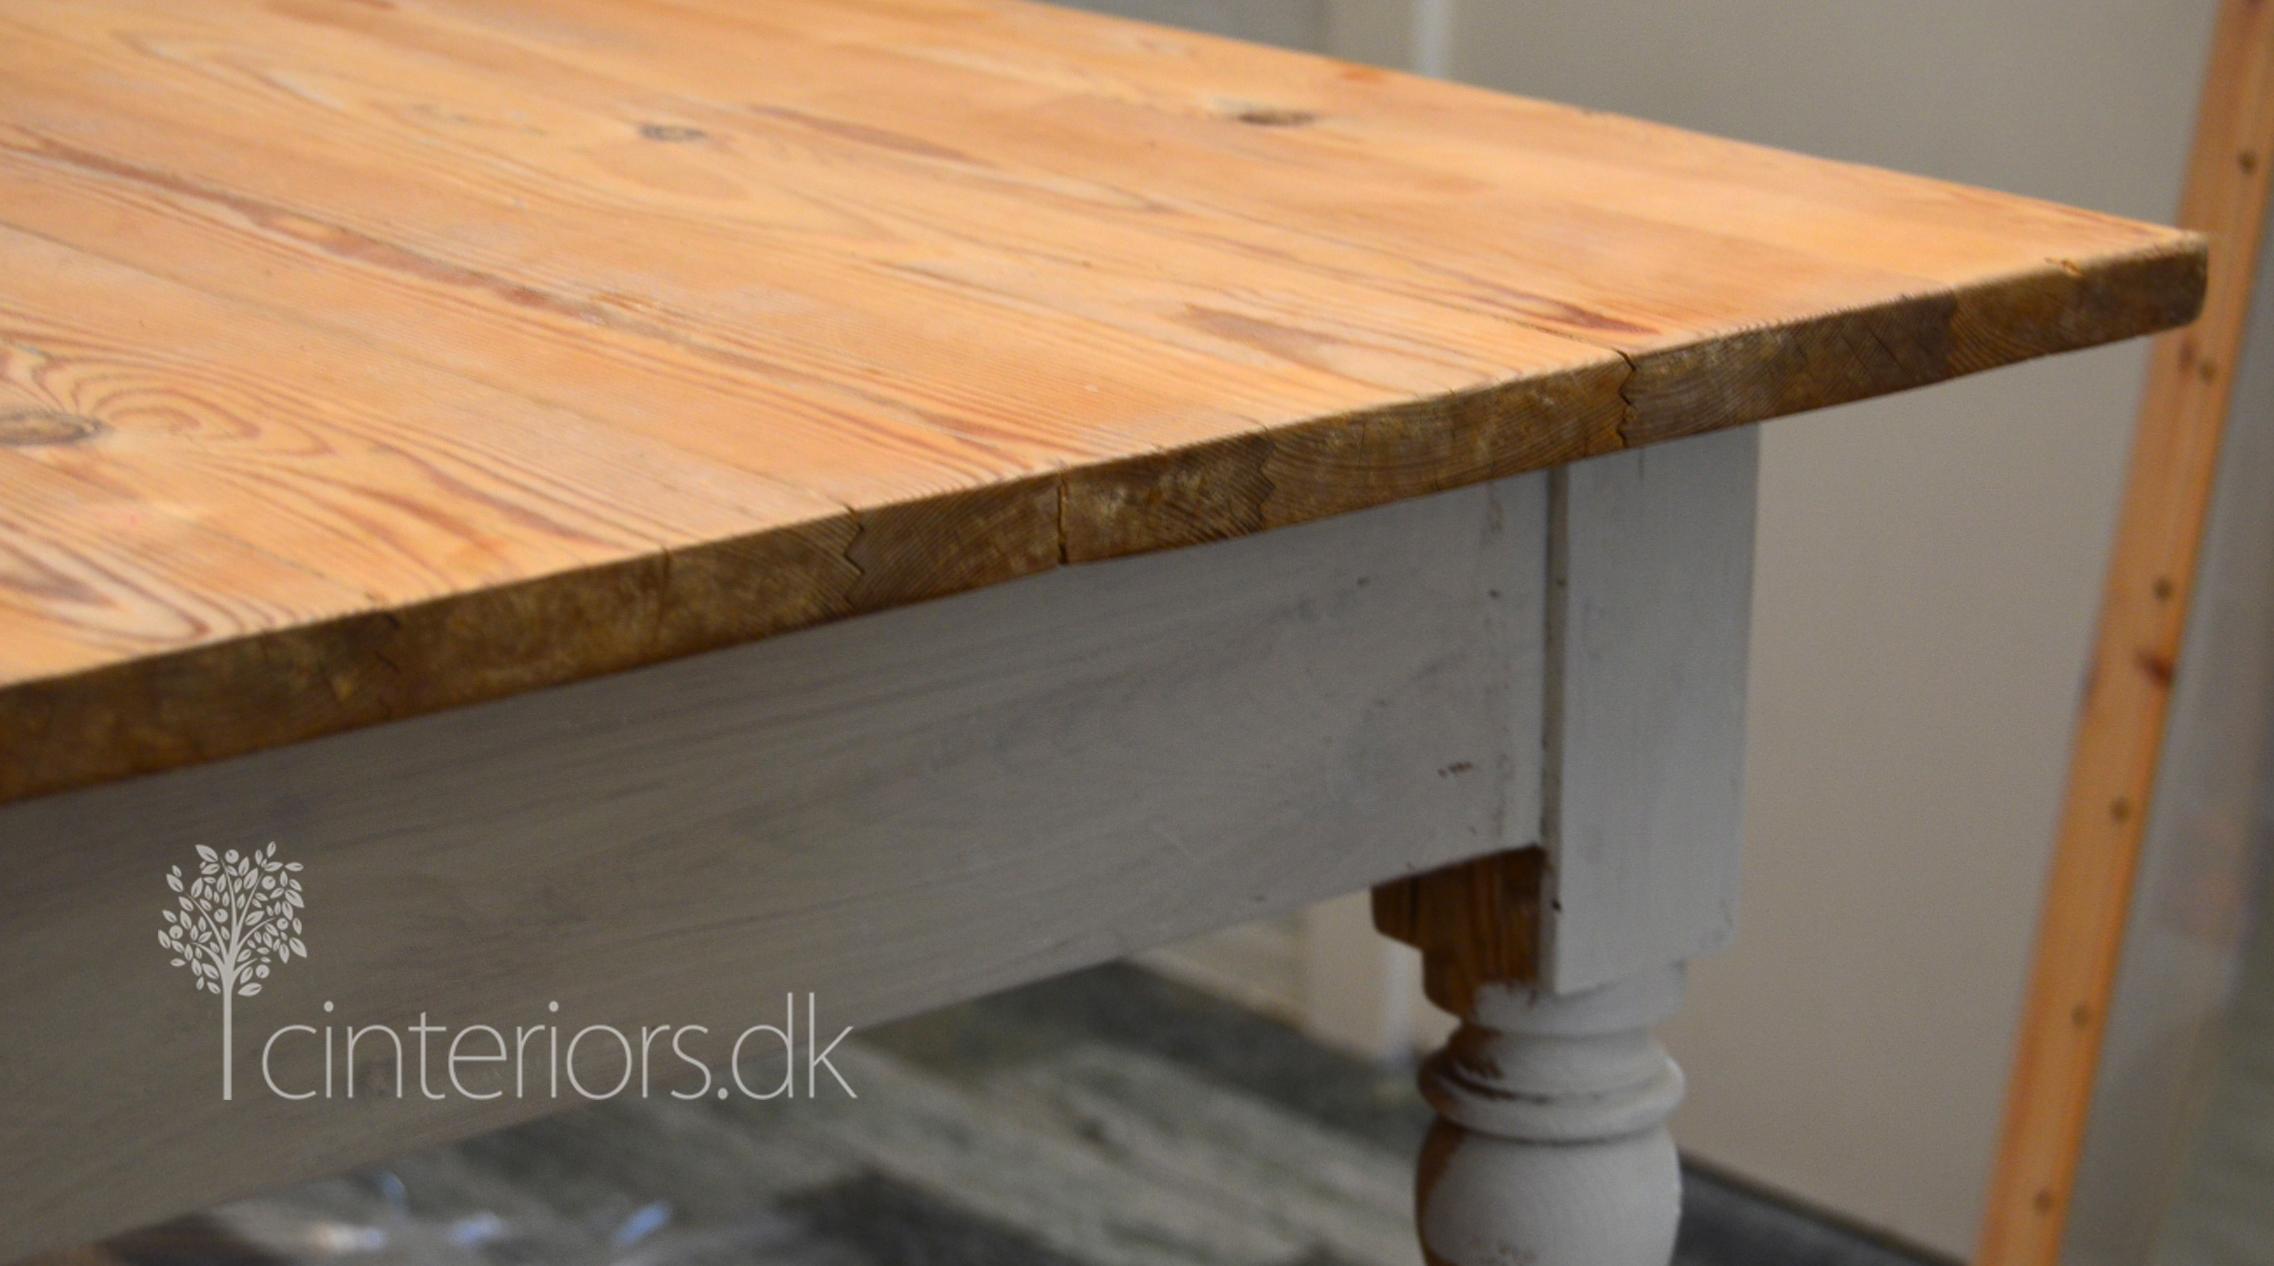 before moving into waxing i finished the table top by using the lime